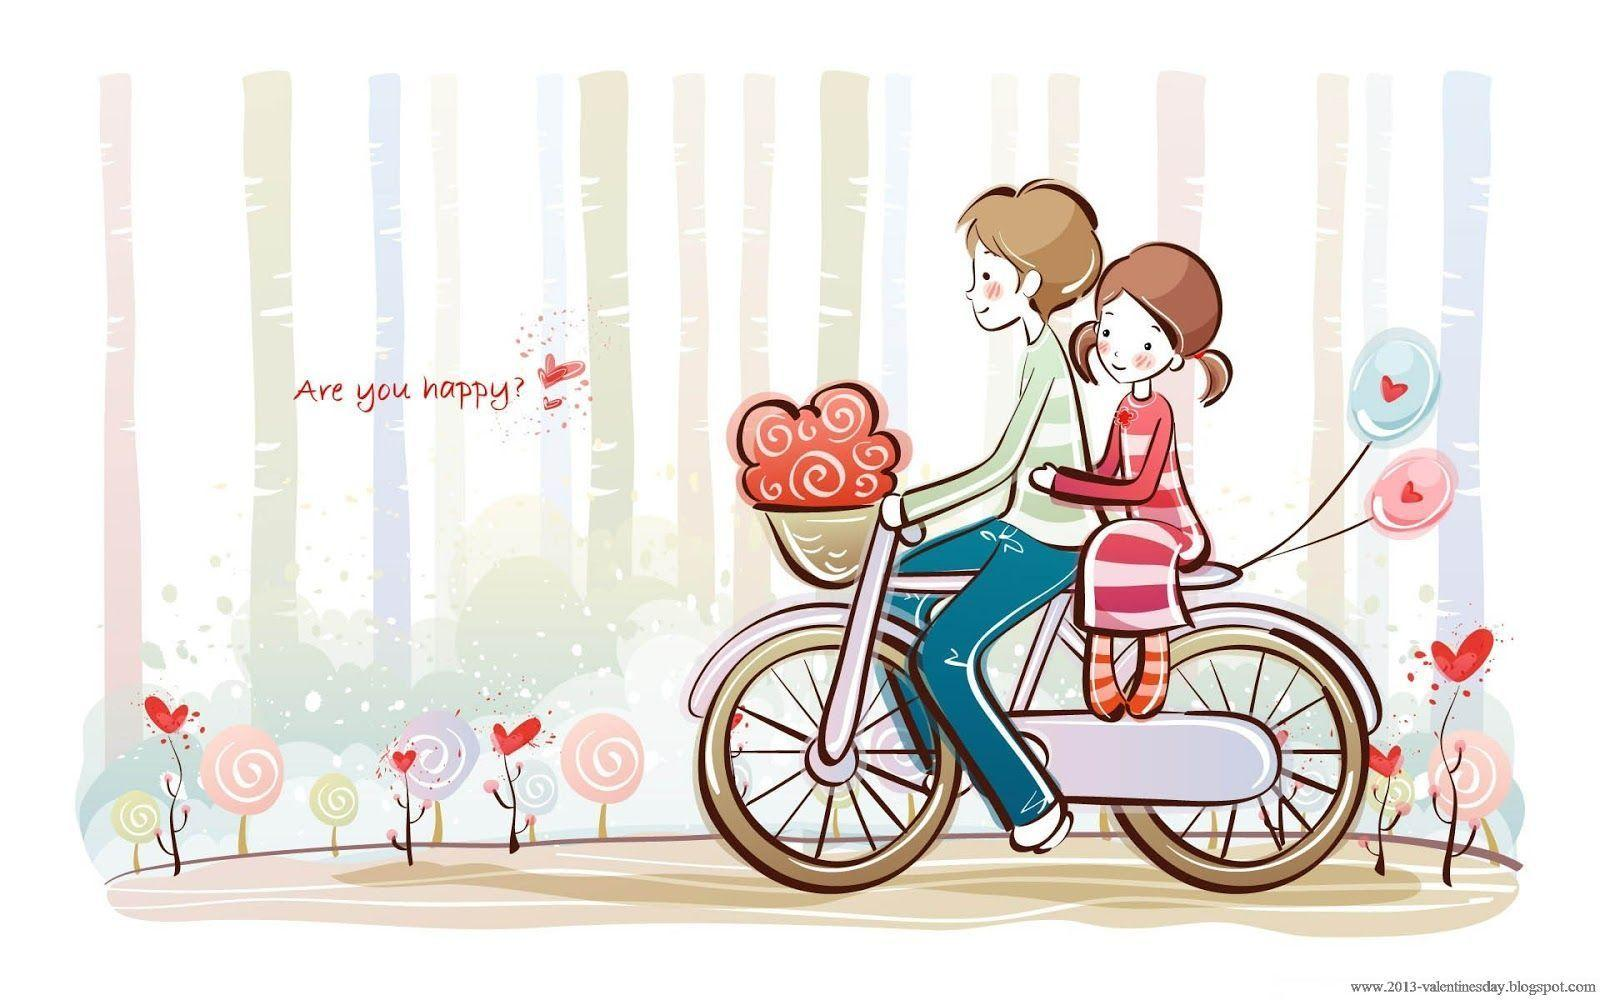 Sweet Love cartoon Wallpaper : Love cartoon Wallpapers - Wallpaper cave